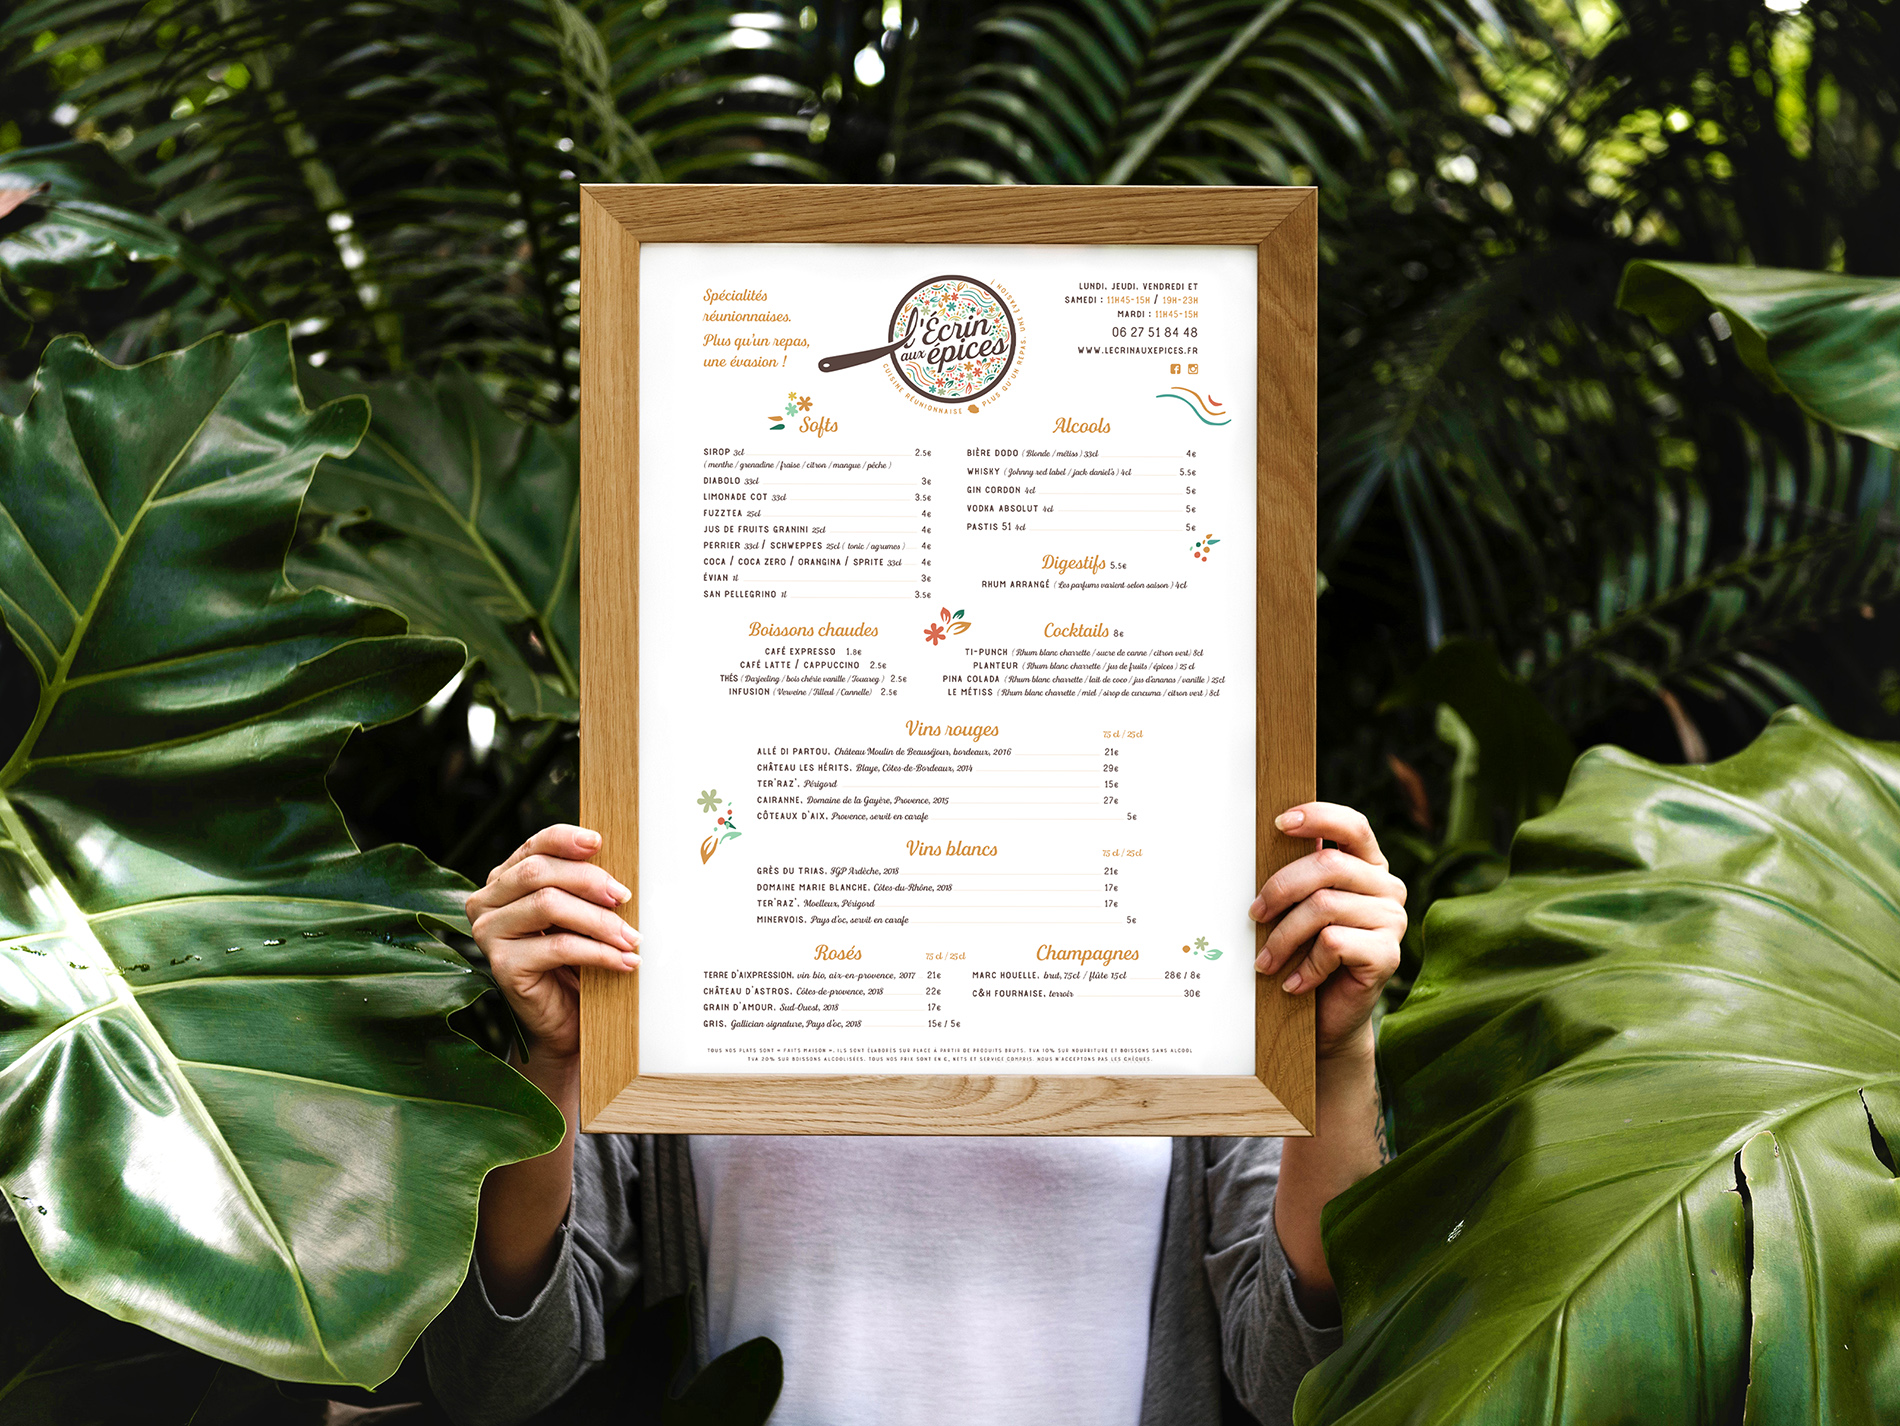 Creation graphique d'un menu et carte des boissons d'un restaurant creole en normandie